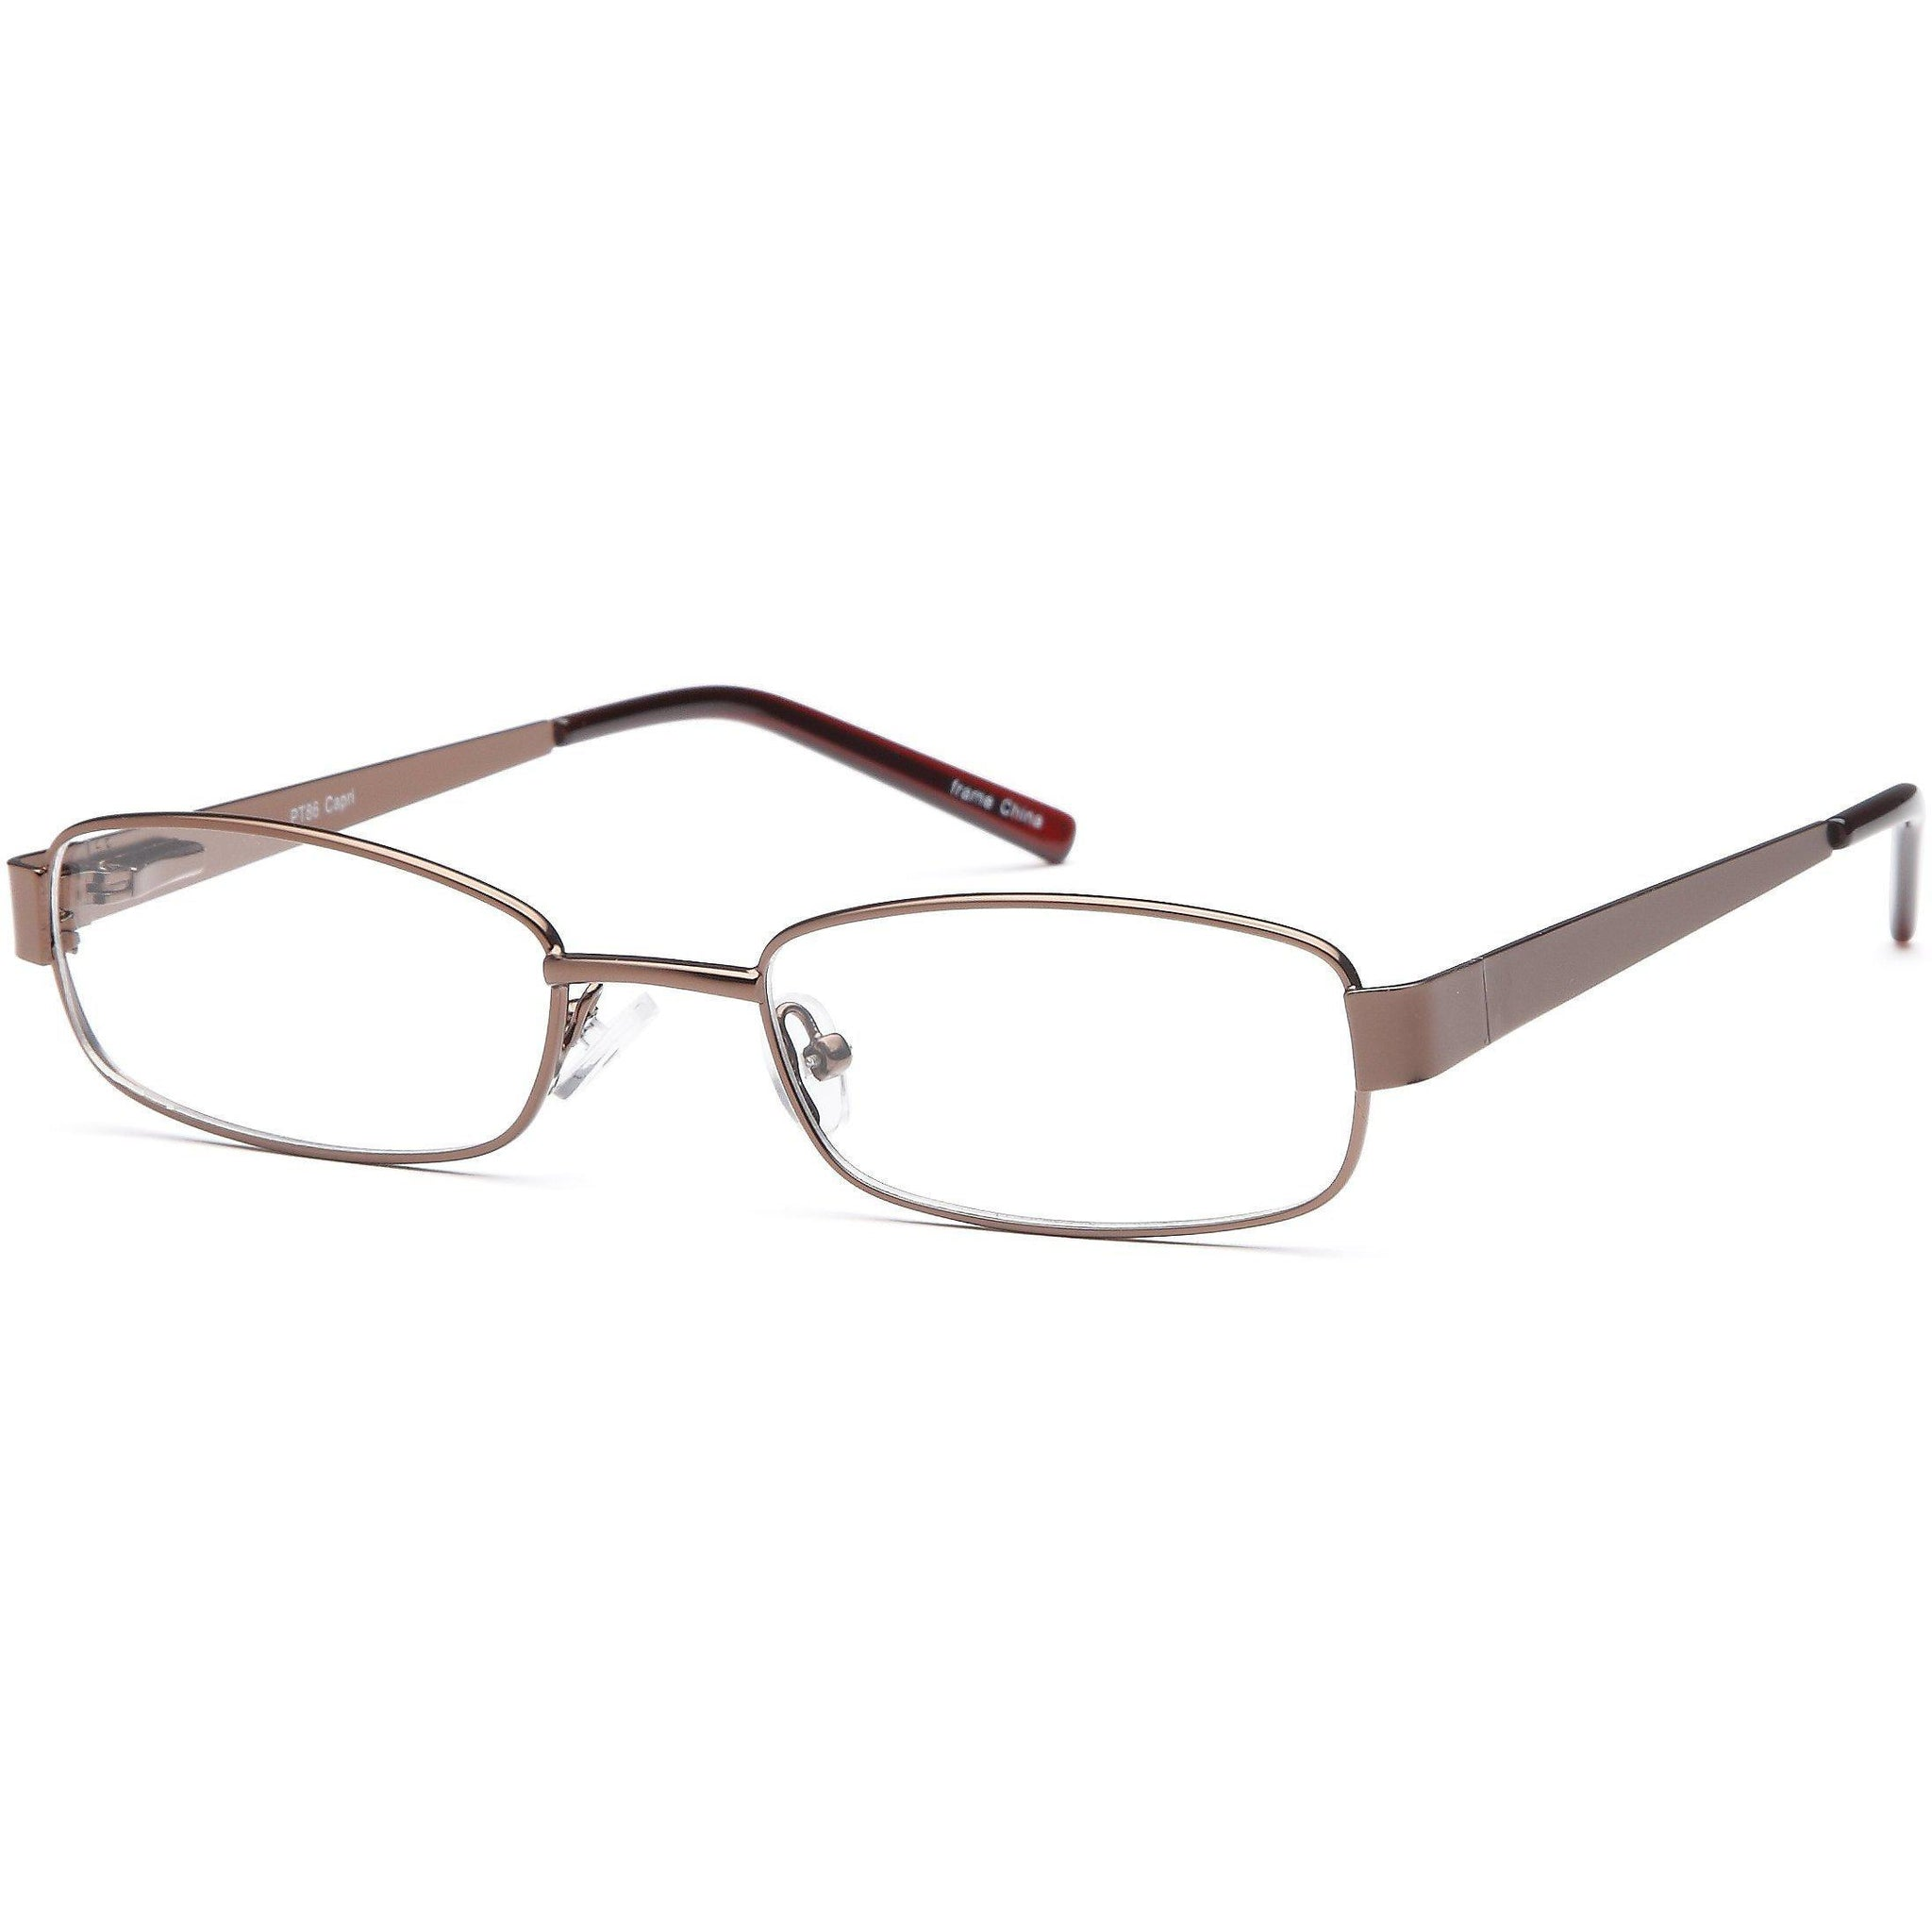 Appletree Prescription Glasses PT 86 Eyeglasses Frame